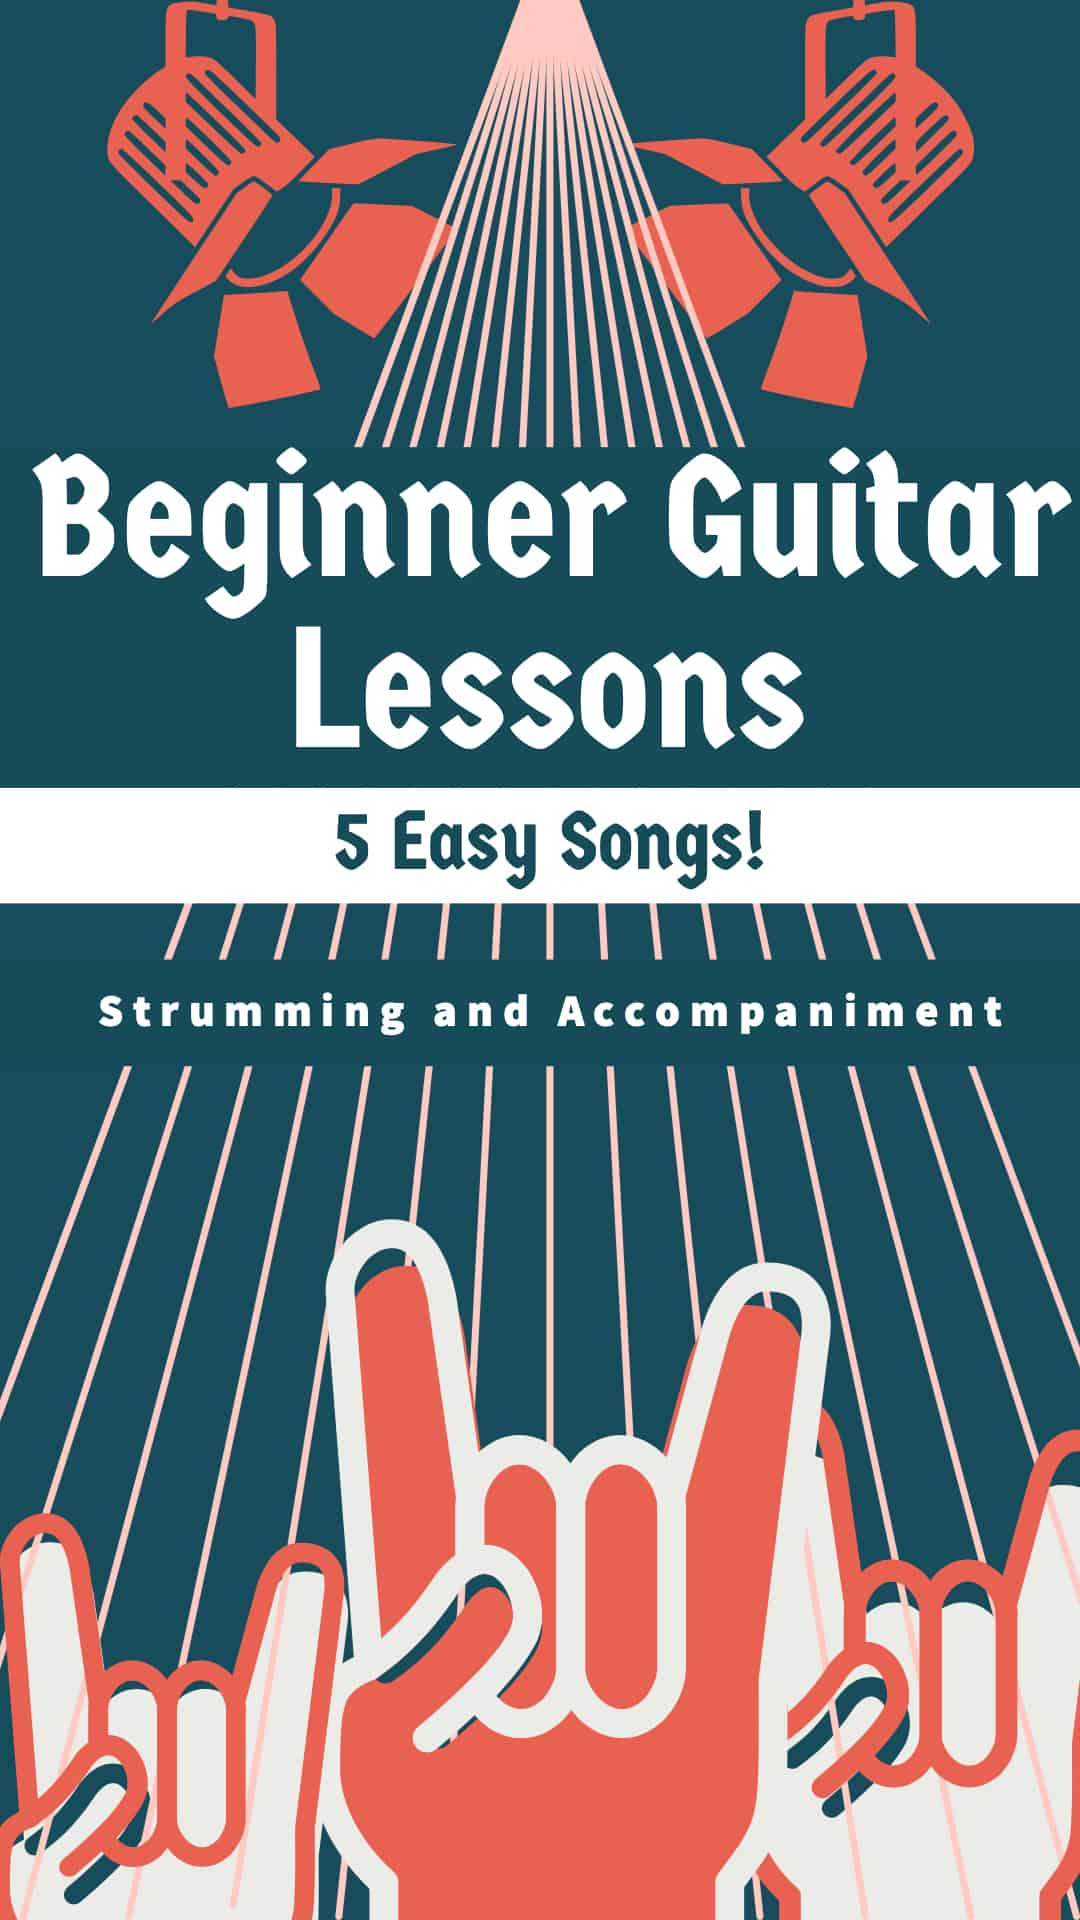 Beginner Guitar Lesson - Strumming and Accompaniment